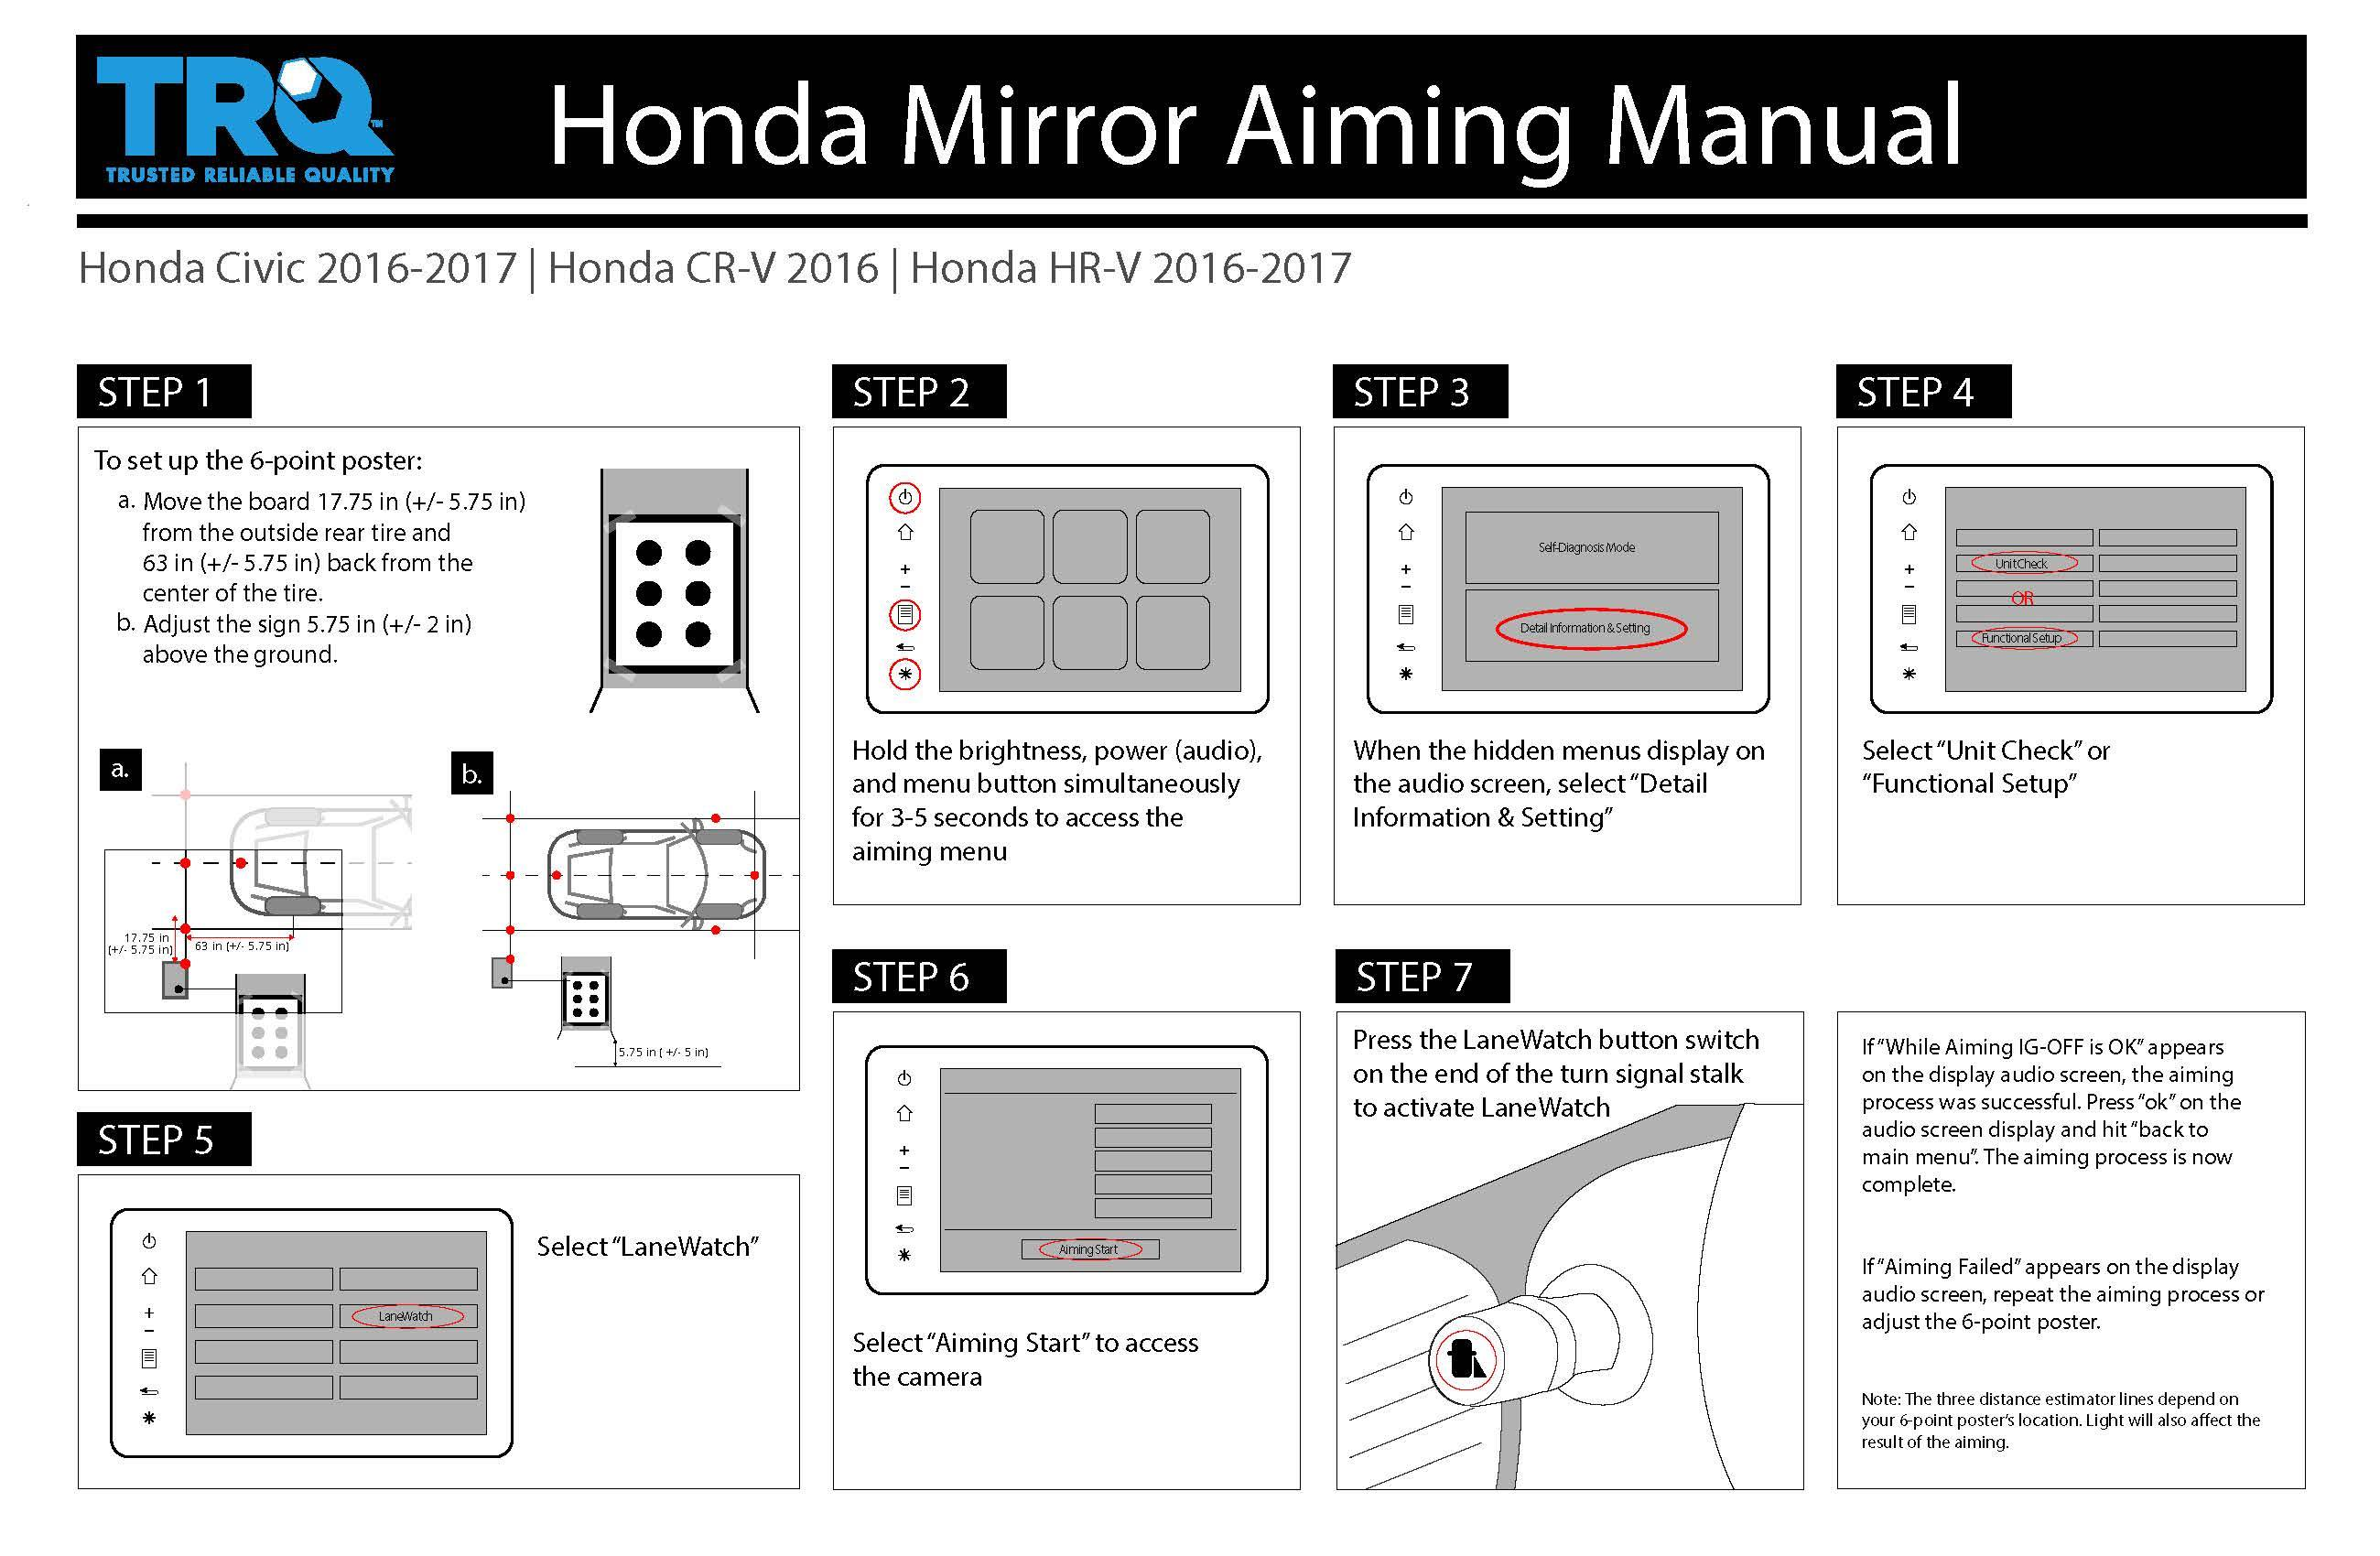 Honda mirror aiming manual for 2016-2017 Honda Civic, 2016 Honda CR-V, and 2016-2017 Honda HR-V from TRQ.